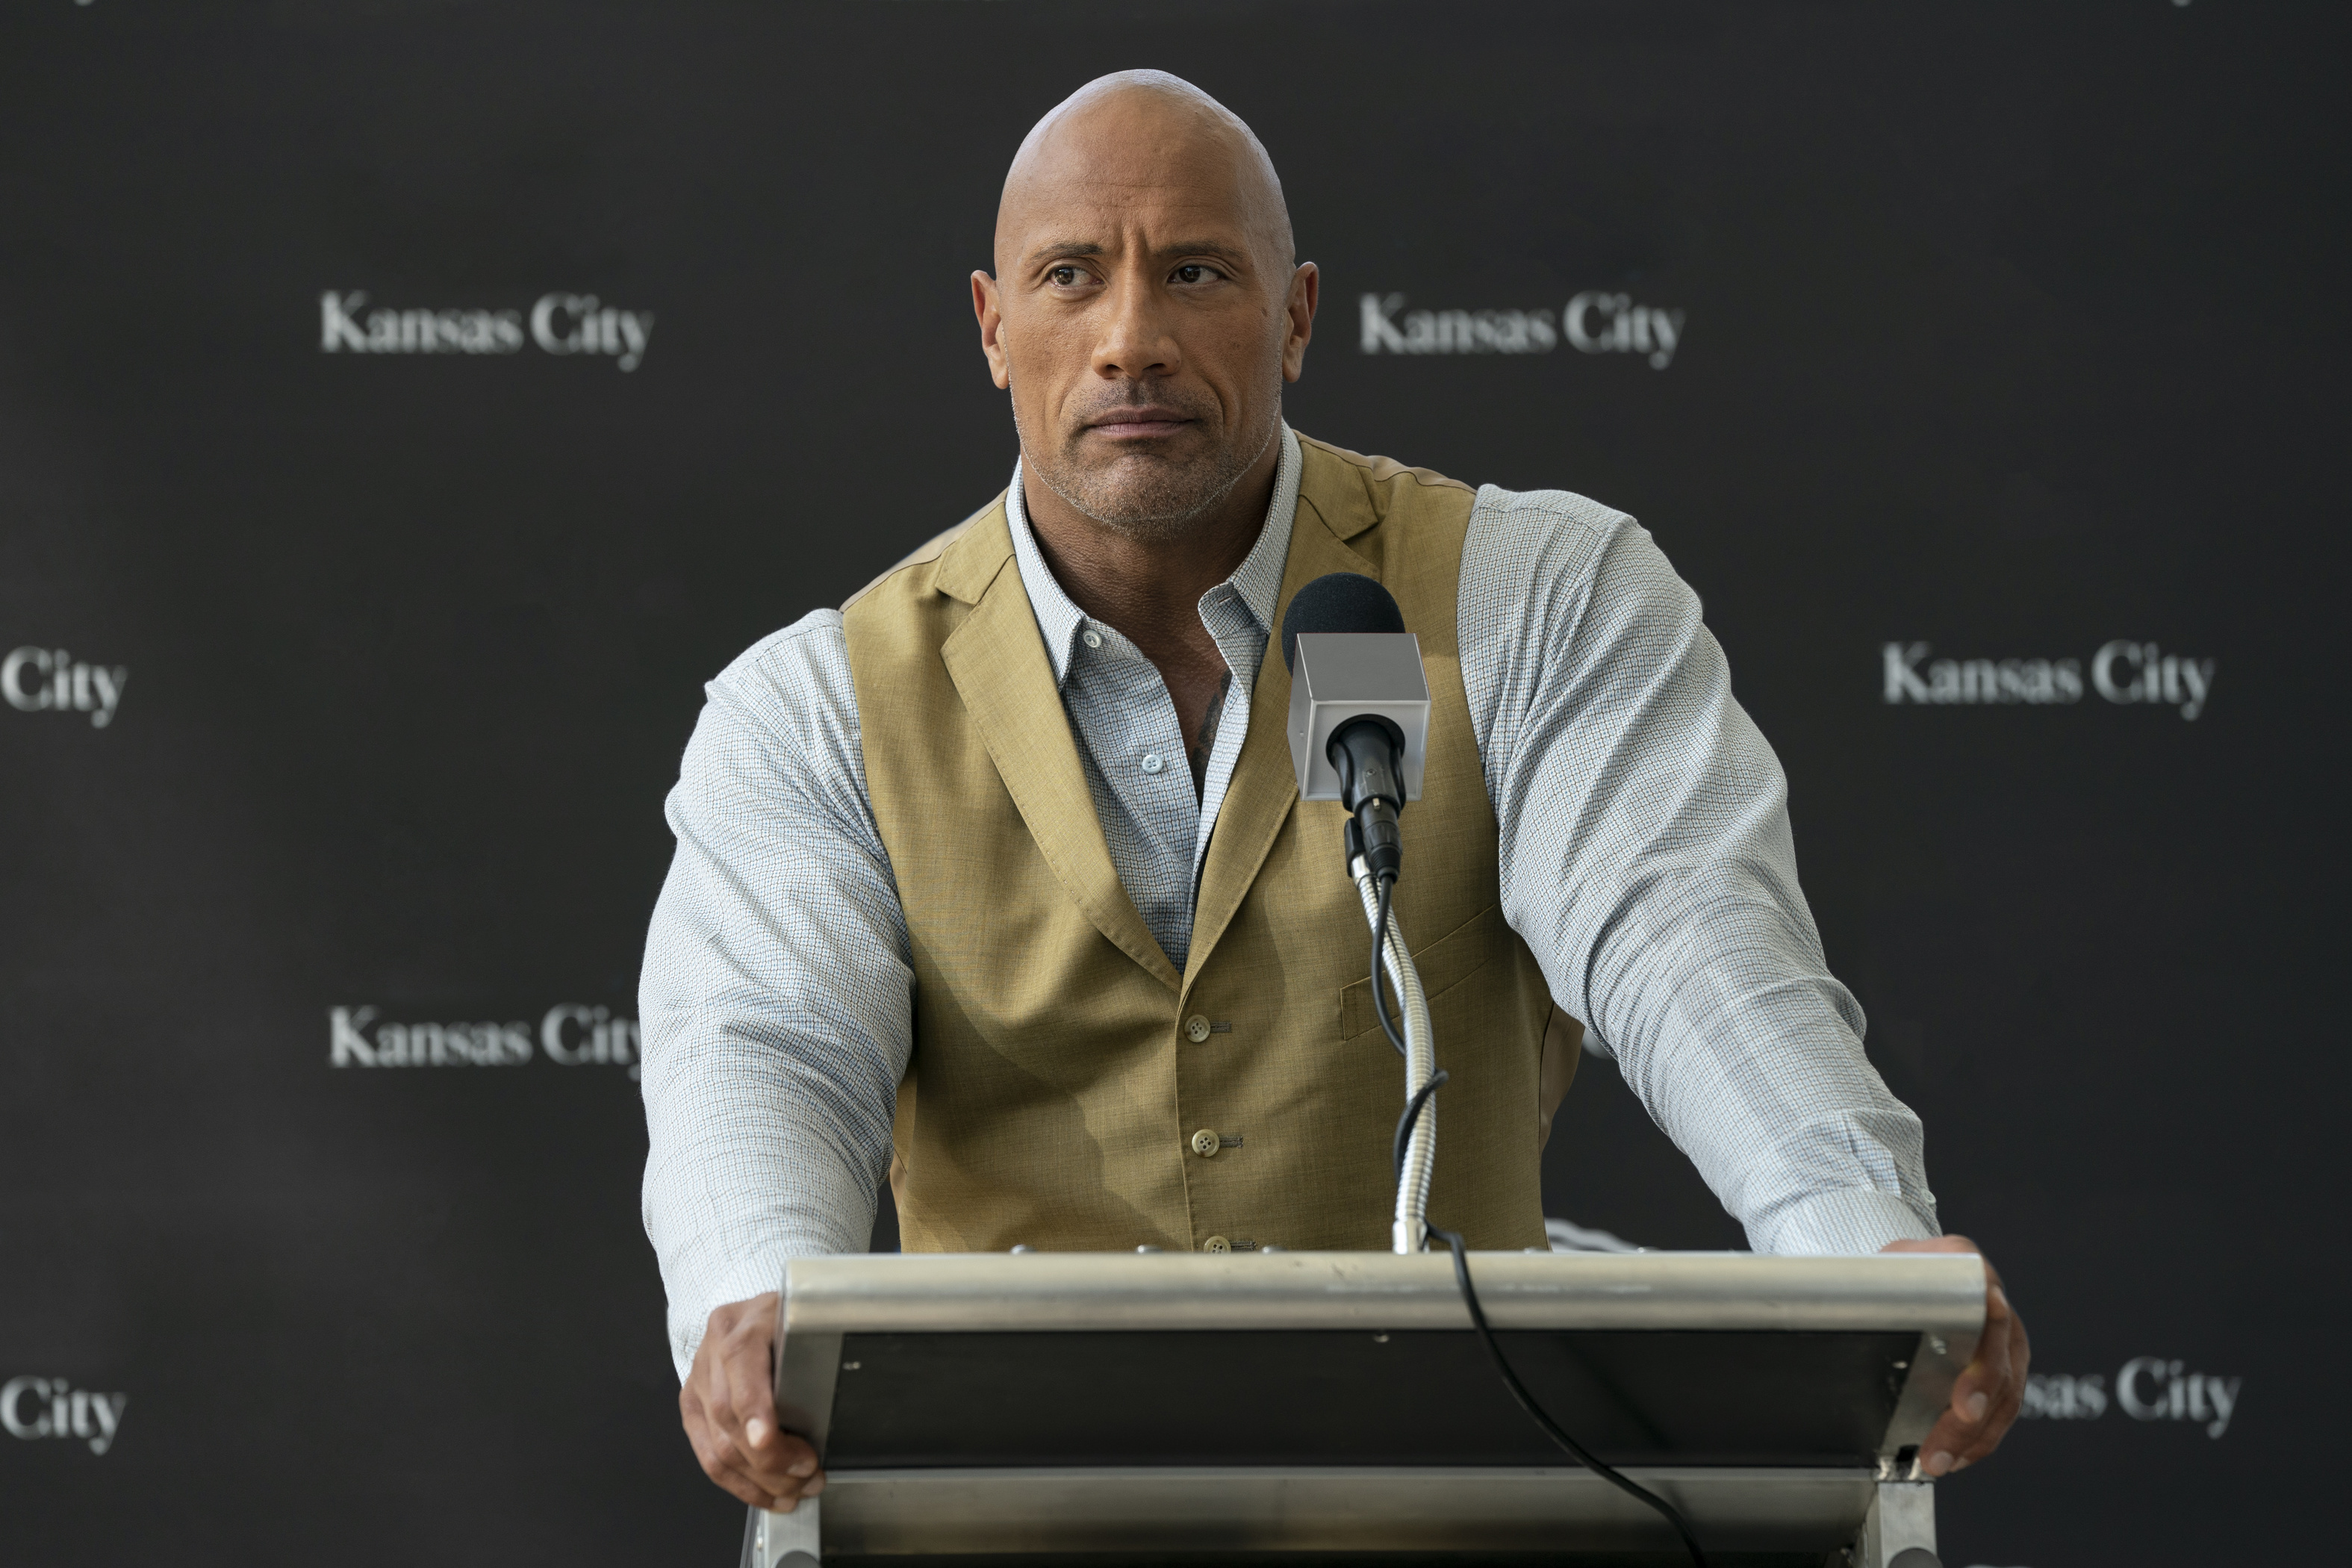 'Ballers' Season 5, Episode 7 synopsis/review: 'To the victor go the spoils'